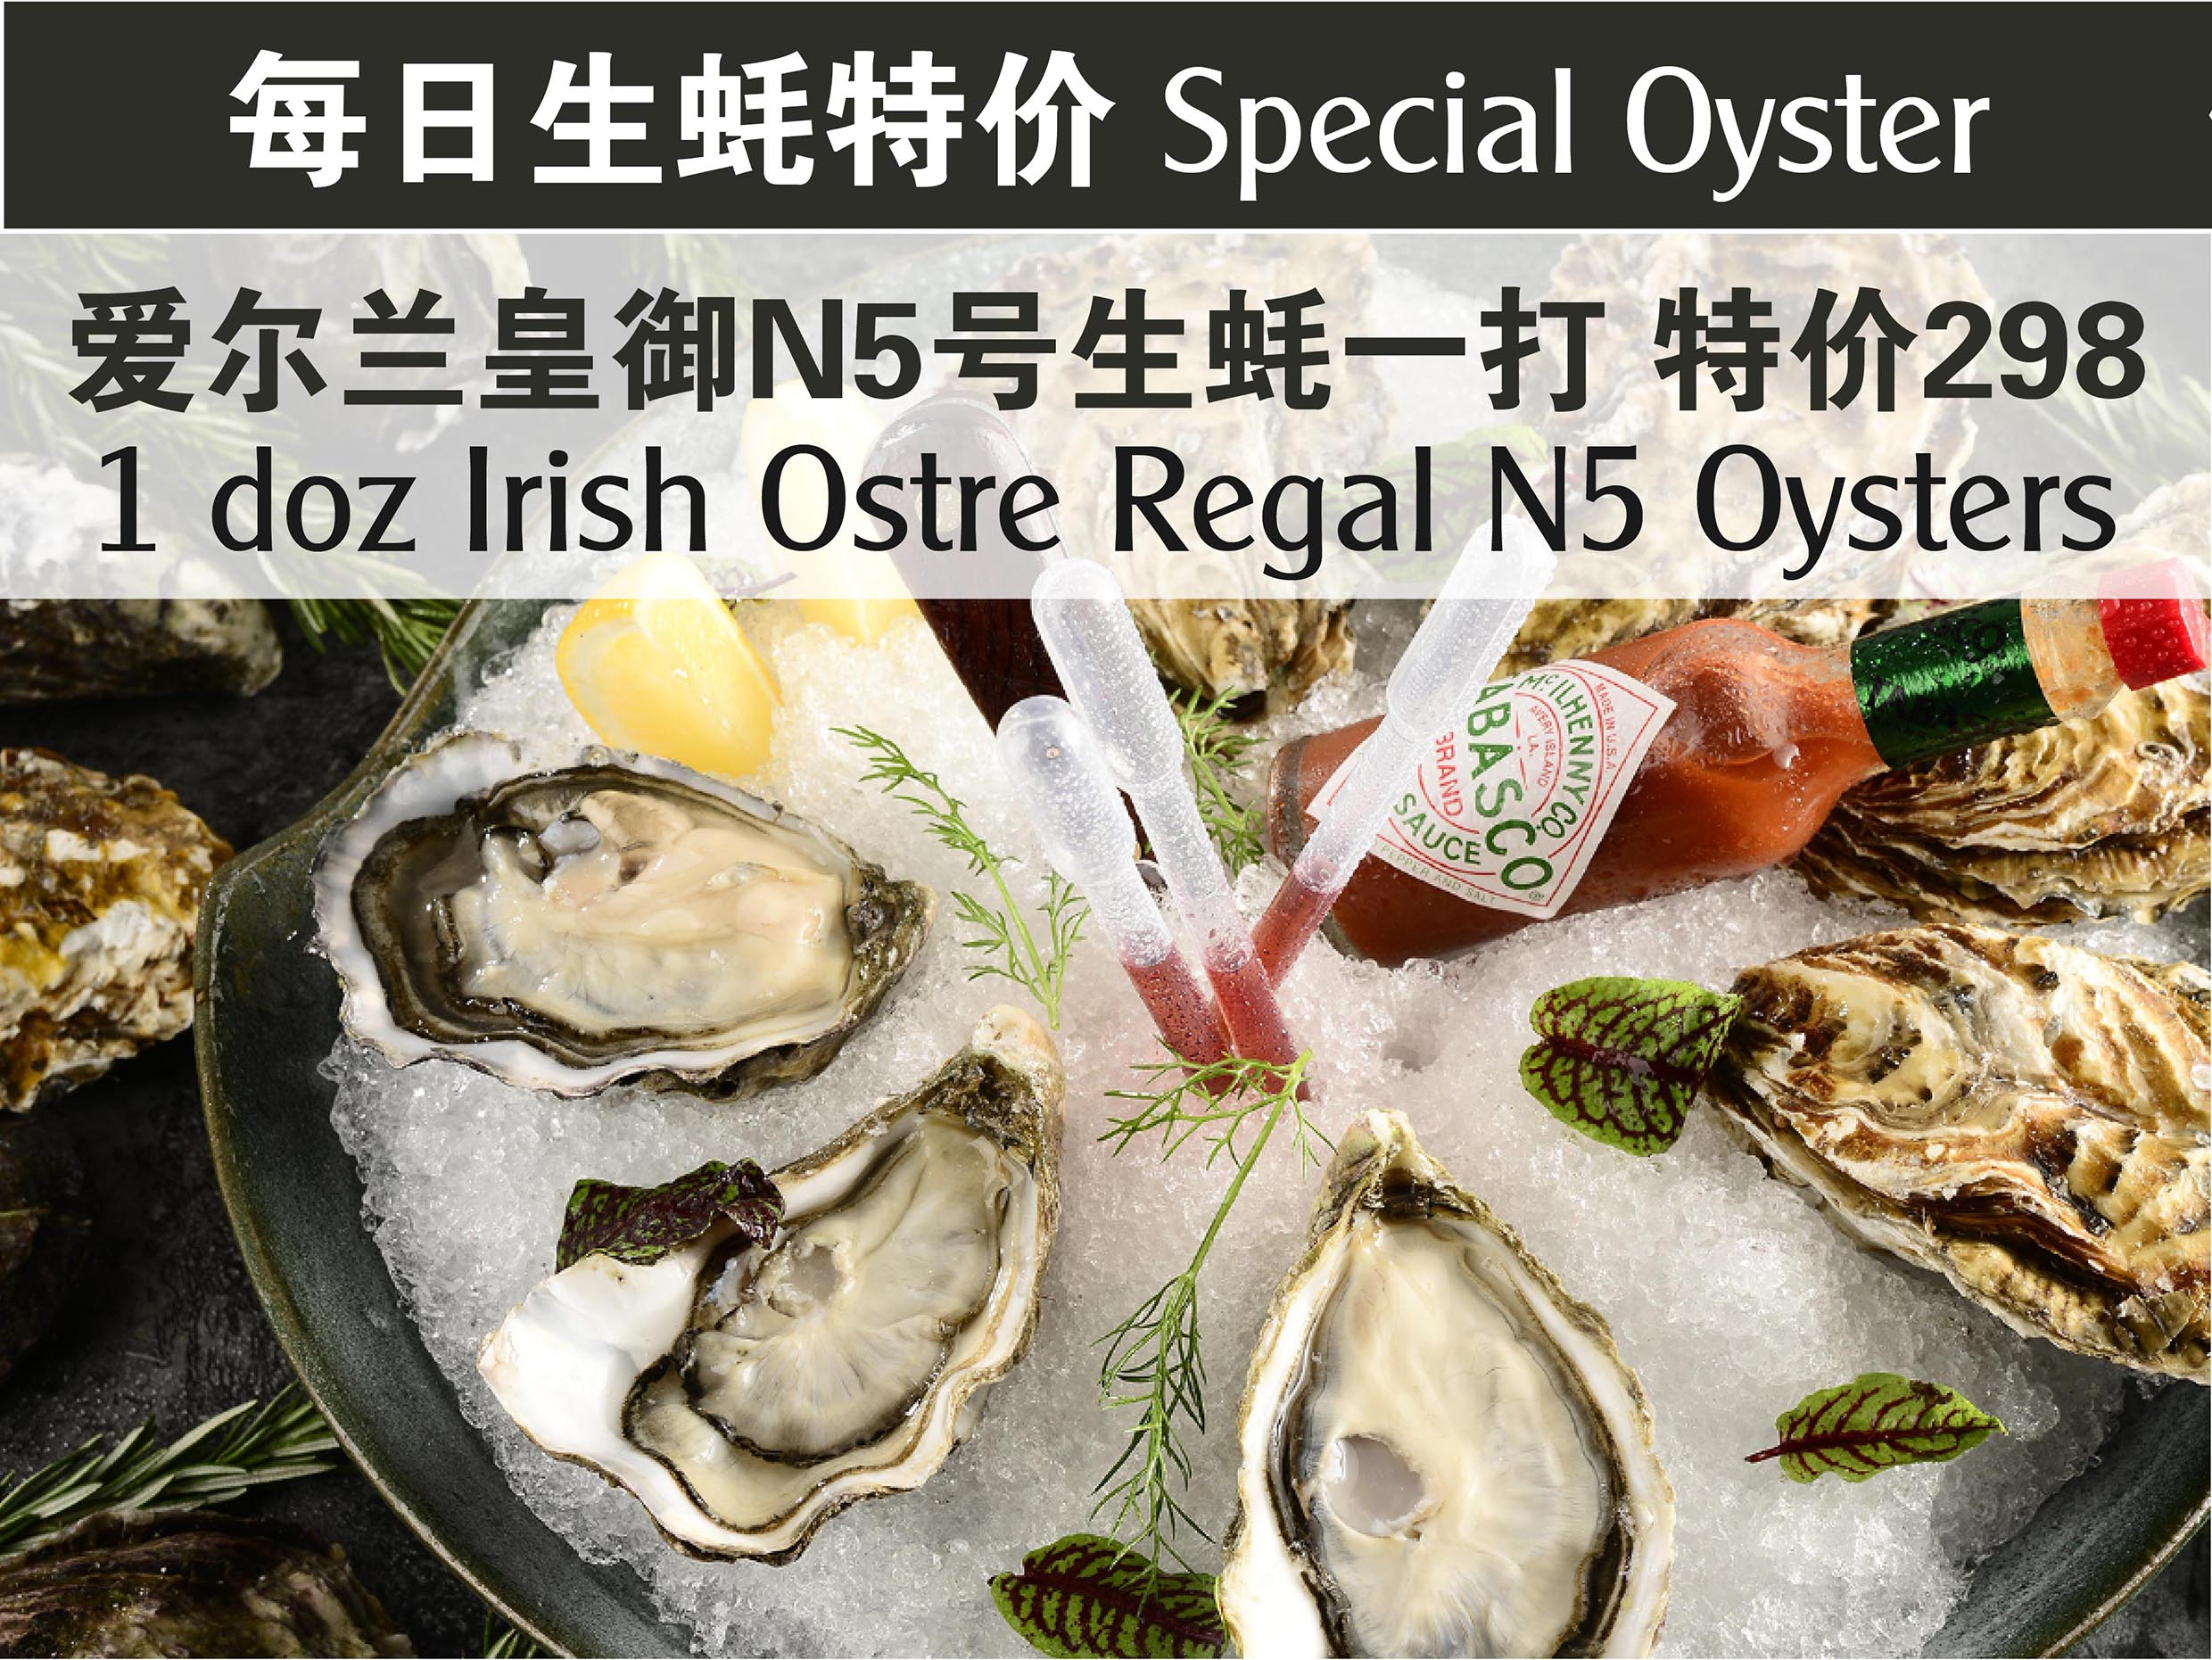 SPECIAL OYSTER